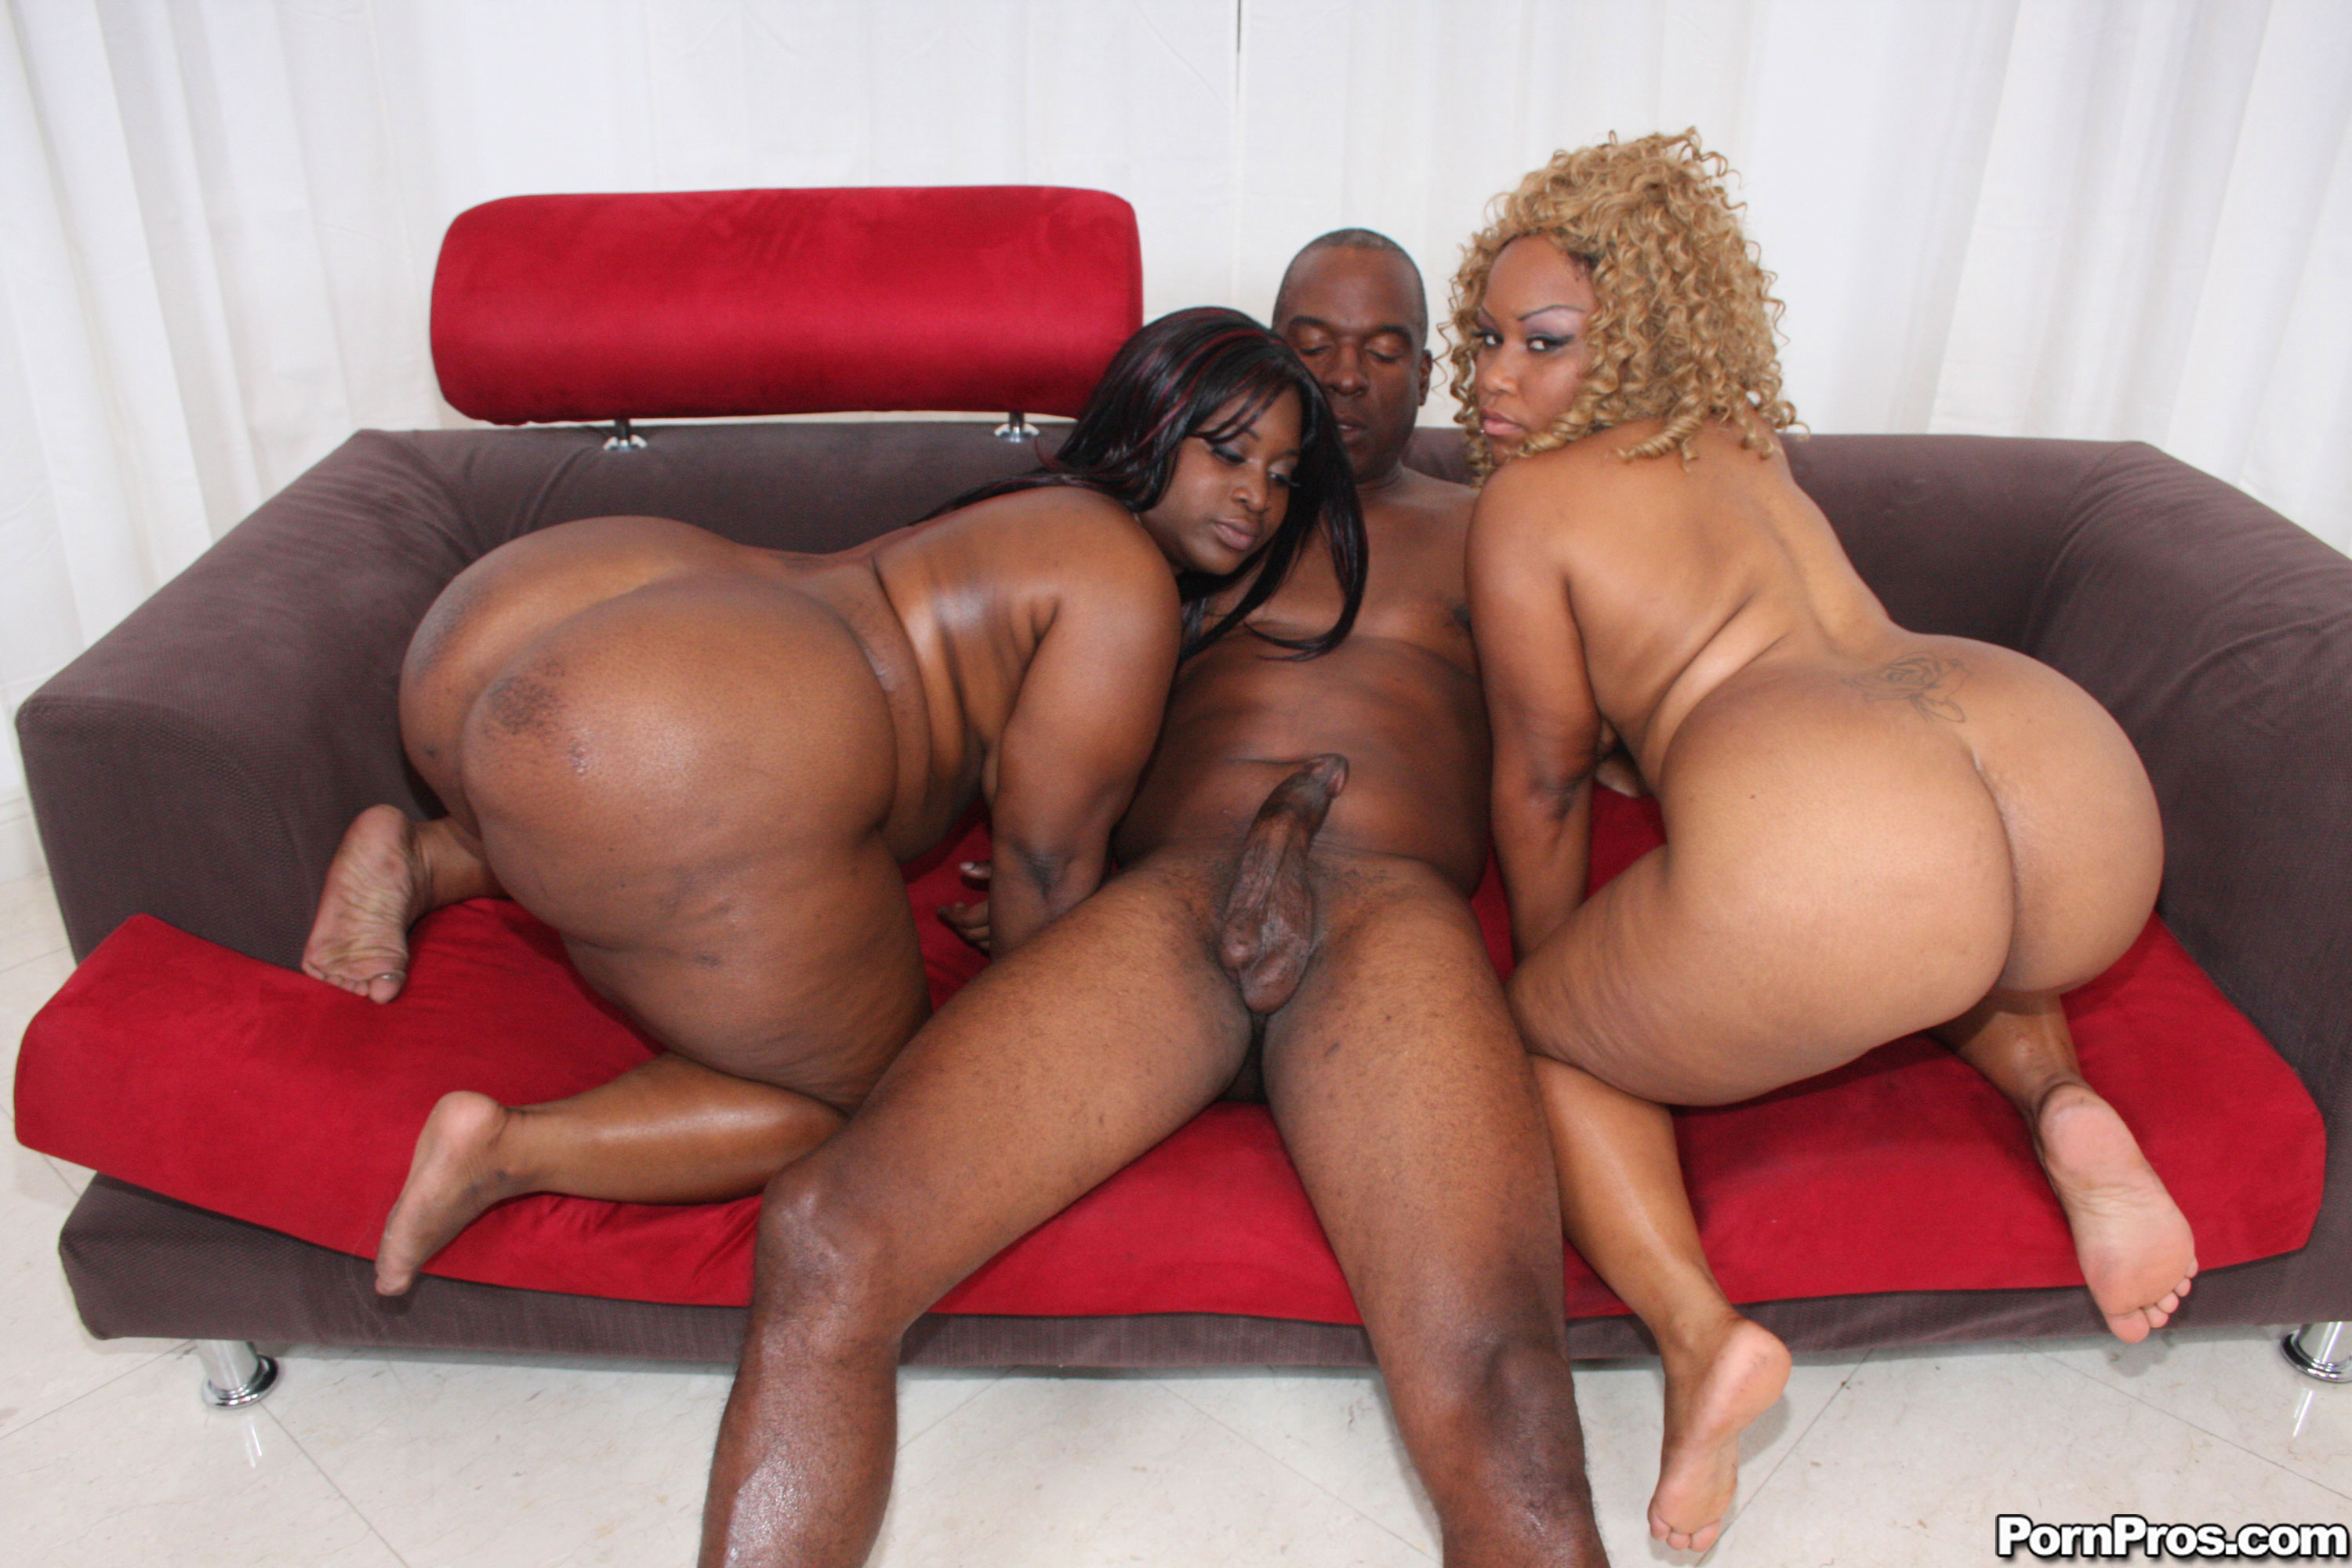 Phat ass black girl naked right! think